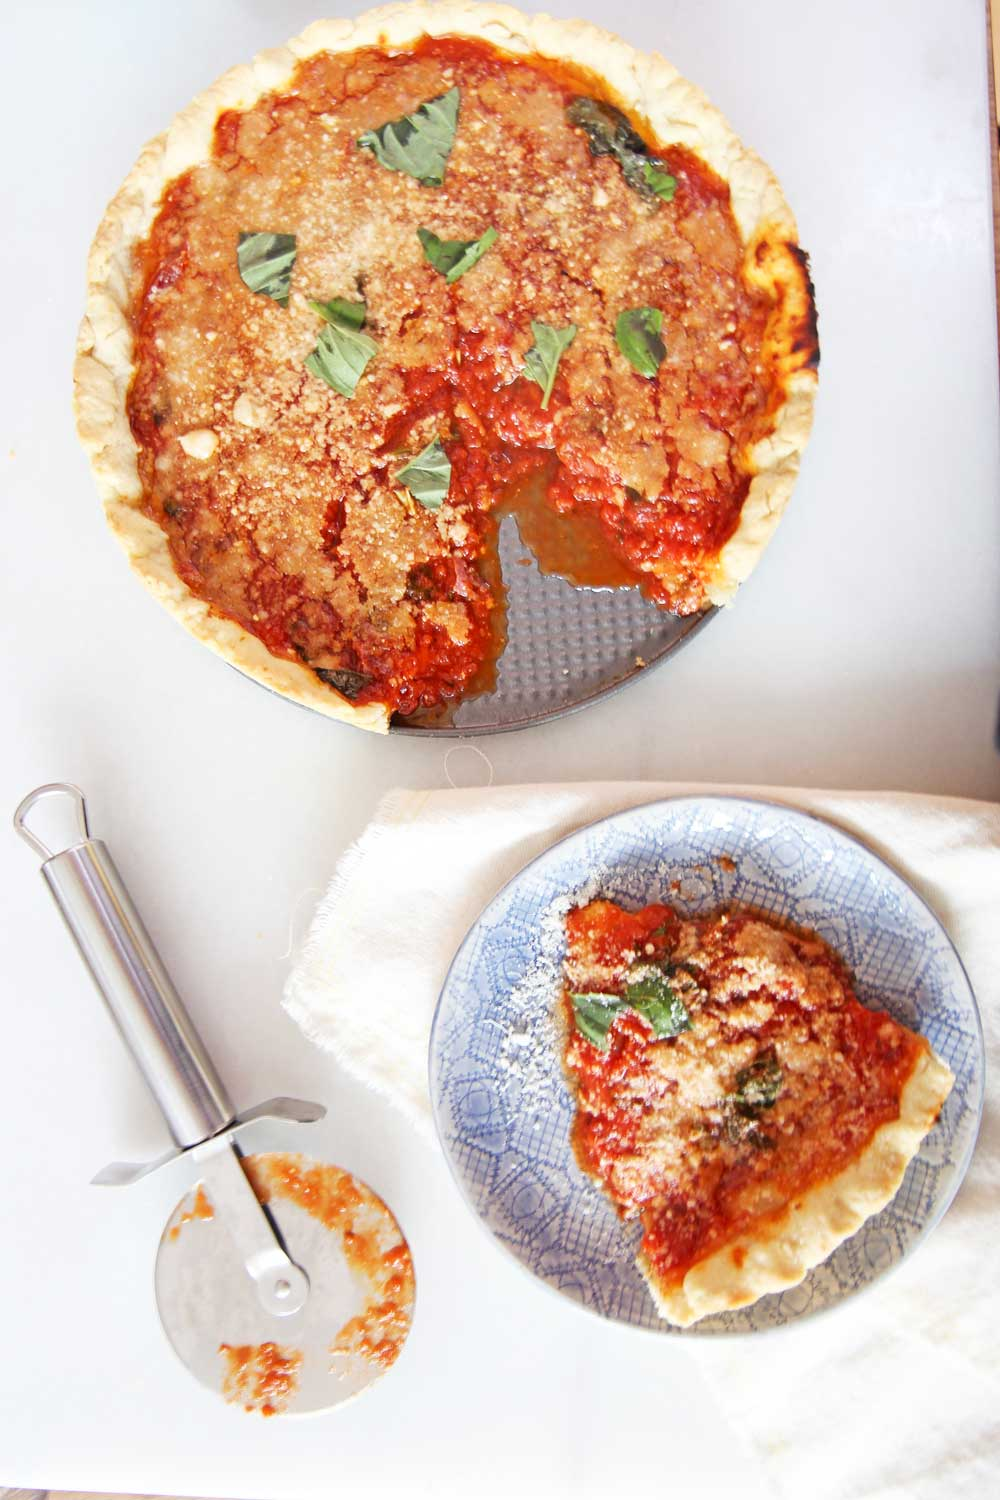 How To Make Deep Dish Pizza. The perfect deep dish pizza recipe uses pie dough as the crust, sweet marinara sauce, and lots of salami. This is an easy weeknight recipe for busy families. Happy Cooking! www.Chophappy.com #deepdishpizza #pizzarecipe